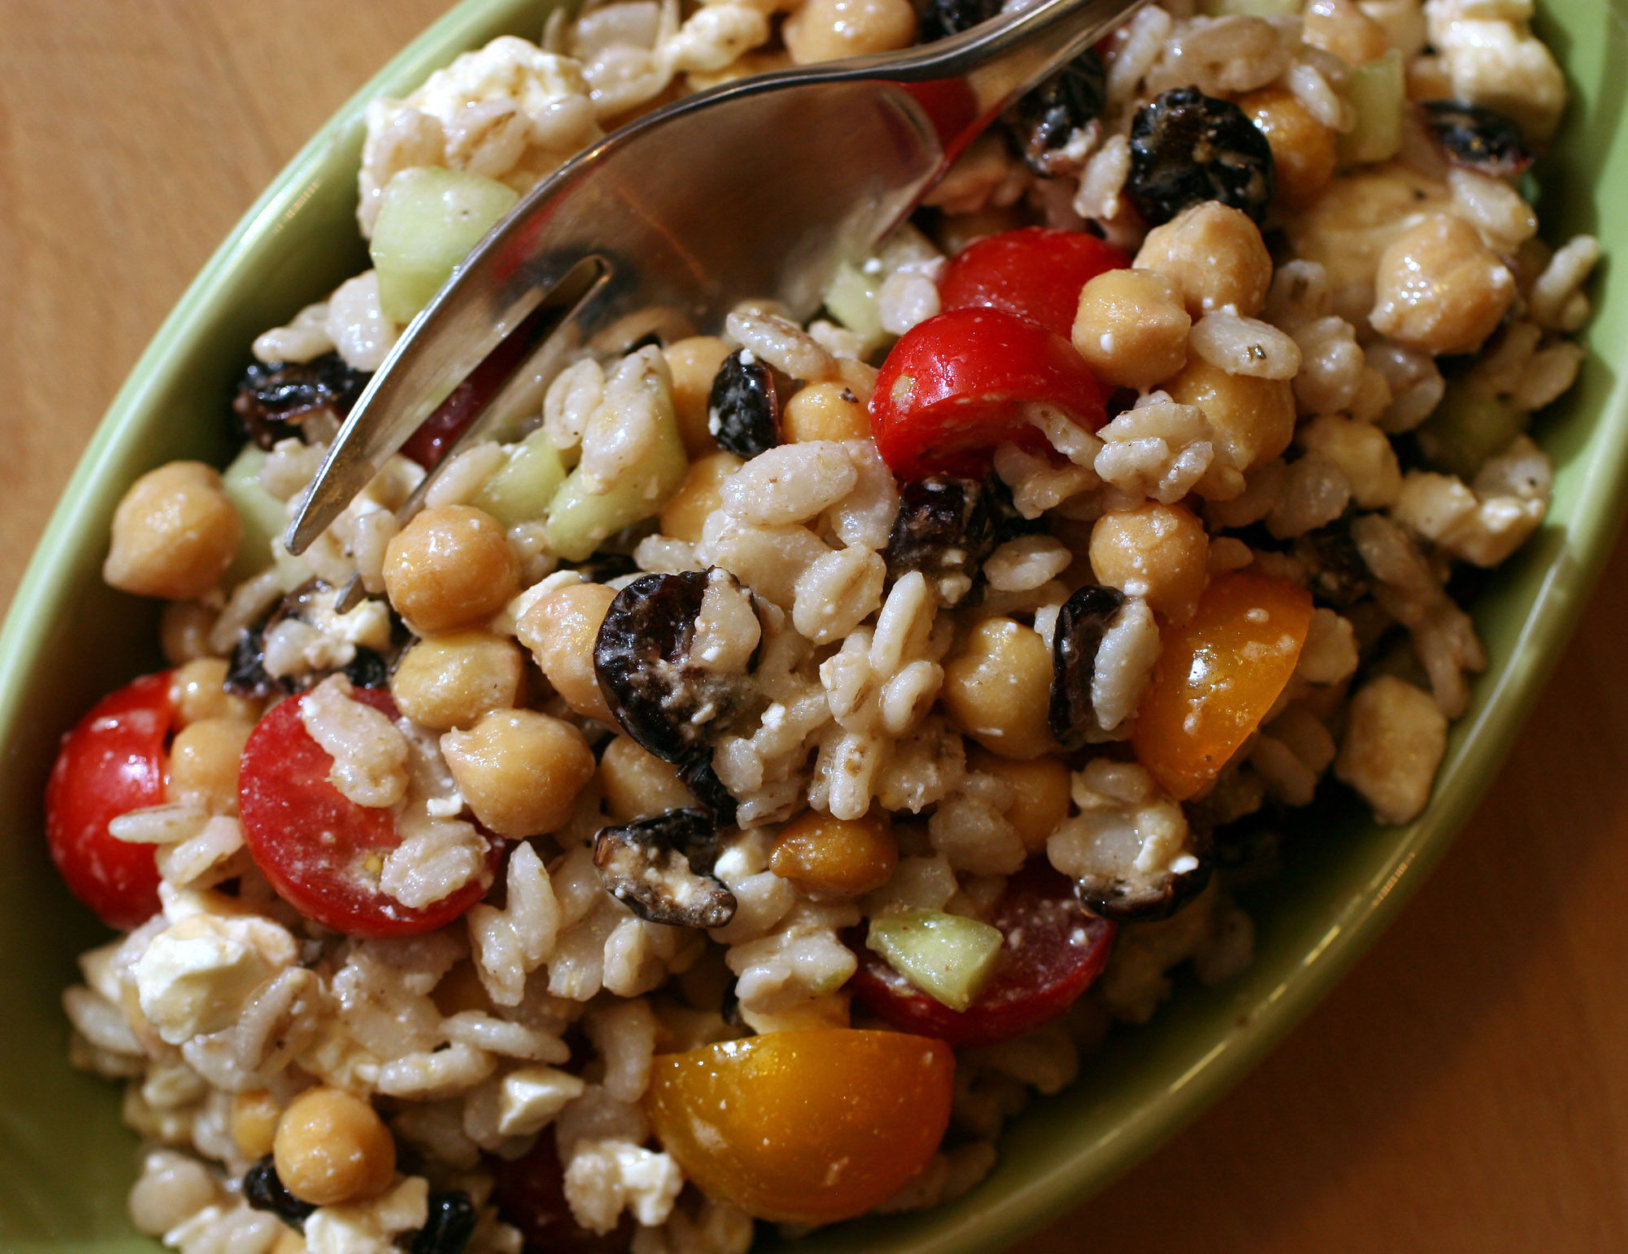 ** FOR USE WITH AP LIFESTYLES ** If salad fatigue is setting in, try grains instead of greens like in Barley Salad with Feta and Cranberries, shown in this July 11, 2007 photo. (AP Photo/Larry Crowe)